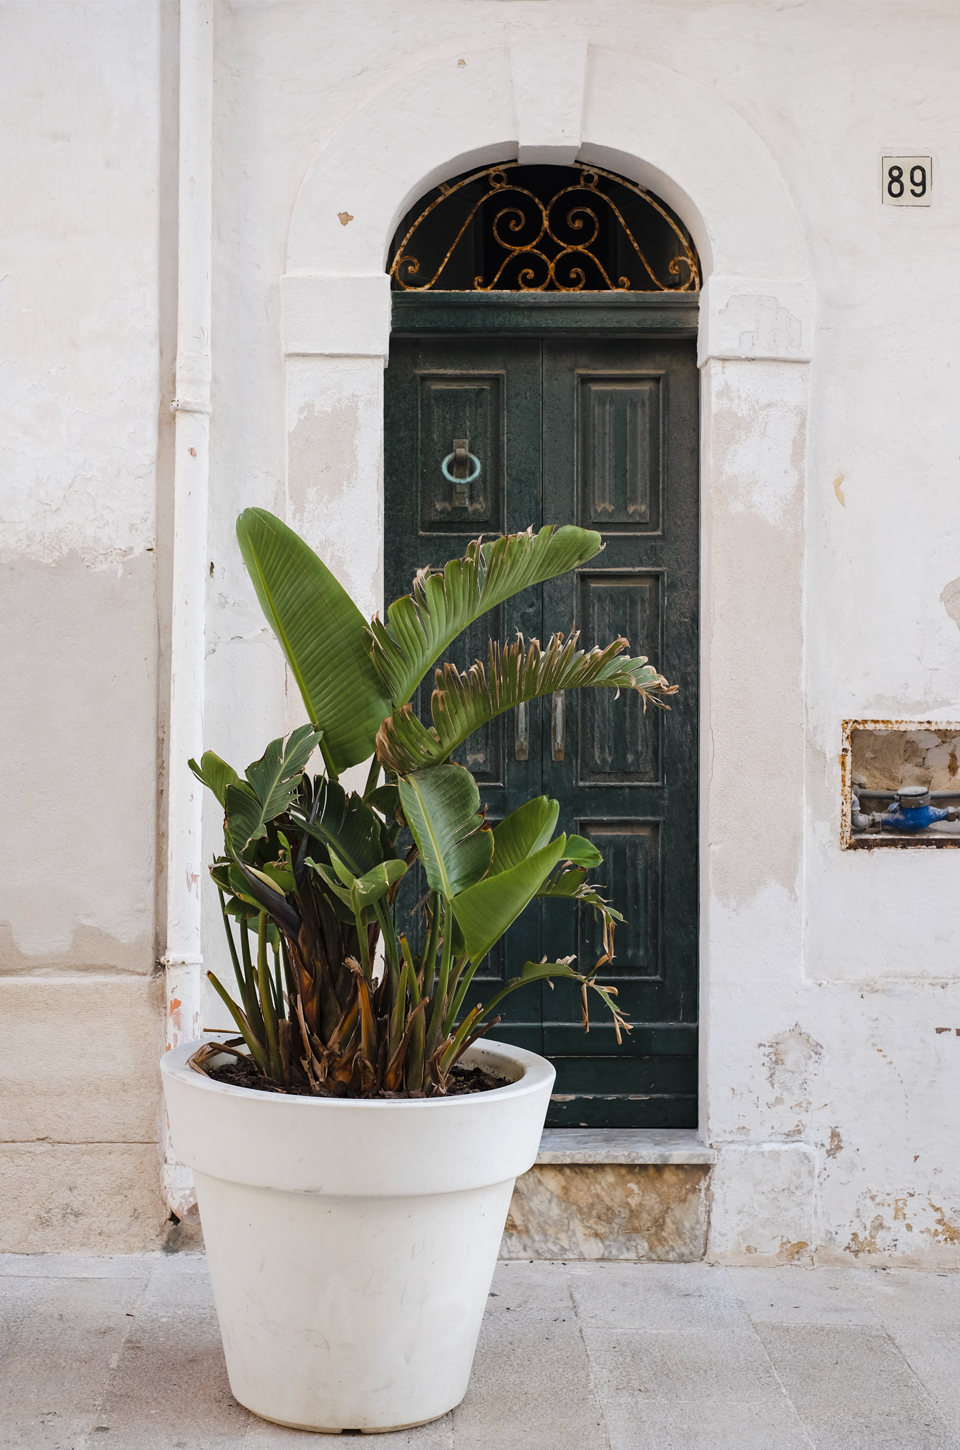 banana plant in a white pot infront of a green door in the center of Polignano